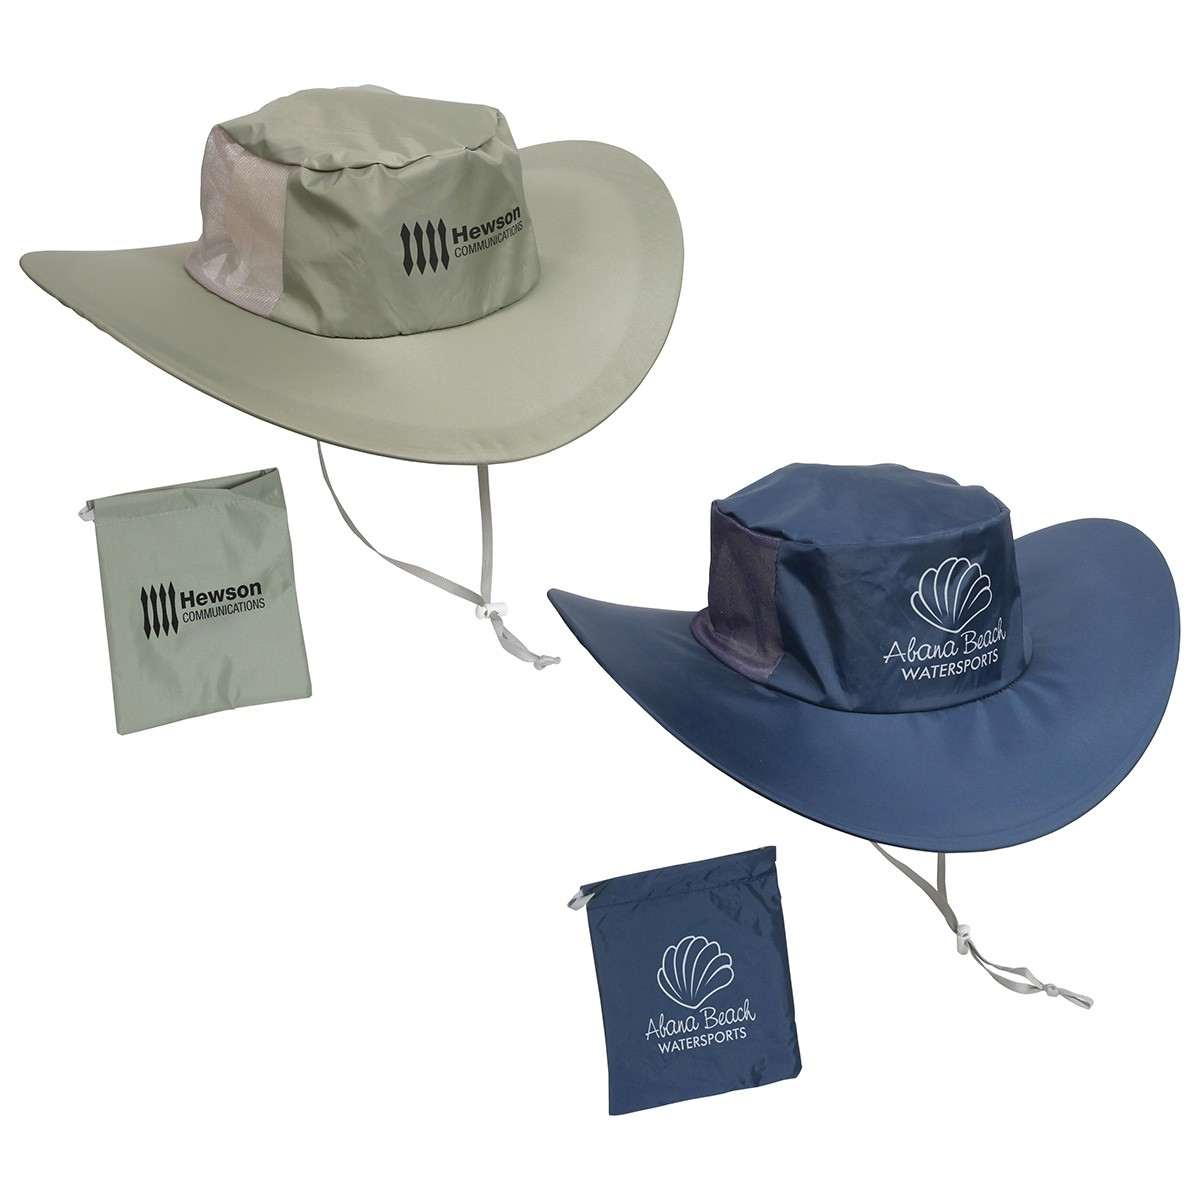 "Fold 'N Go Outdoor Hat  Water resistant nylon hat Unfolds from compact 5"" to 15"" Convenient carrying bag. Complies with Prop 65. 3.25"" H x 15.0"" Diameter"